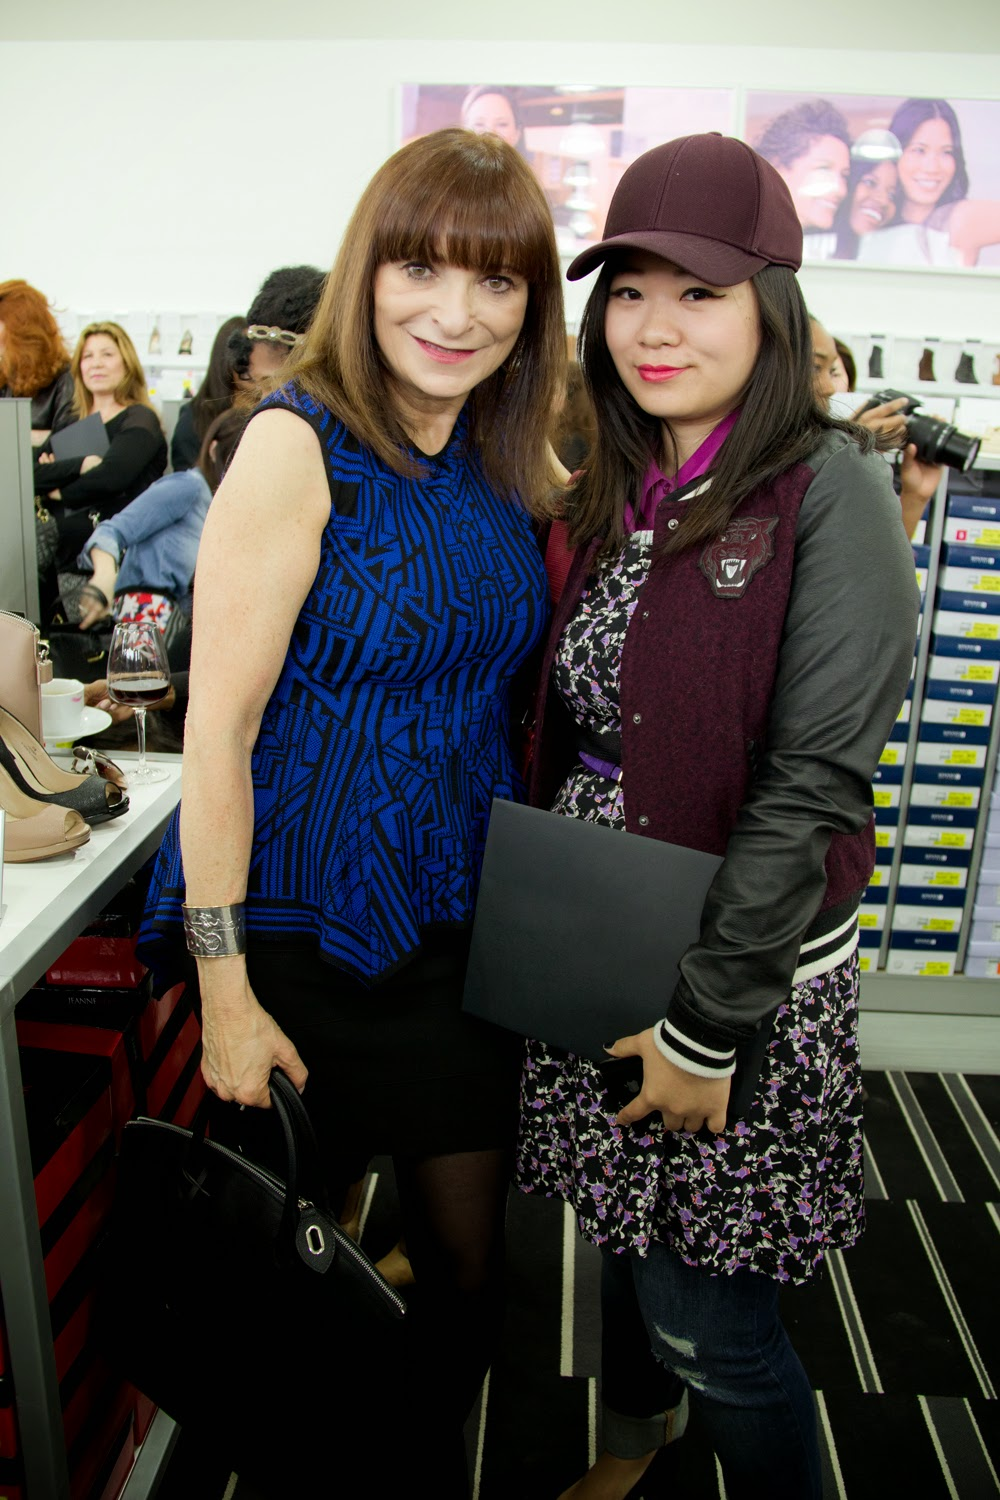 Jeanne-Beker, Fashion-Blogger, Media-Event, Preview